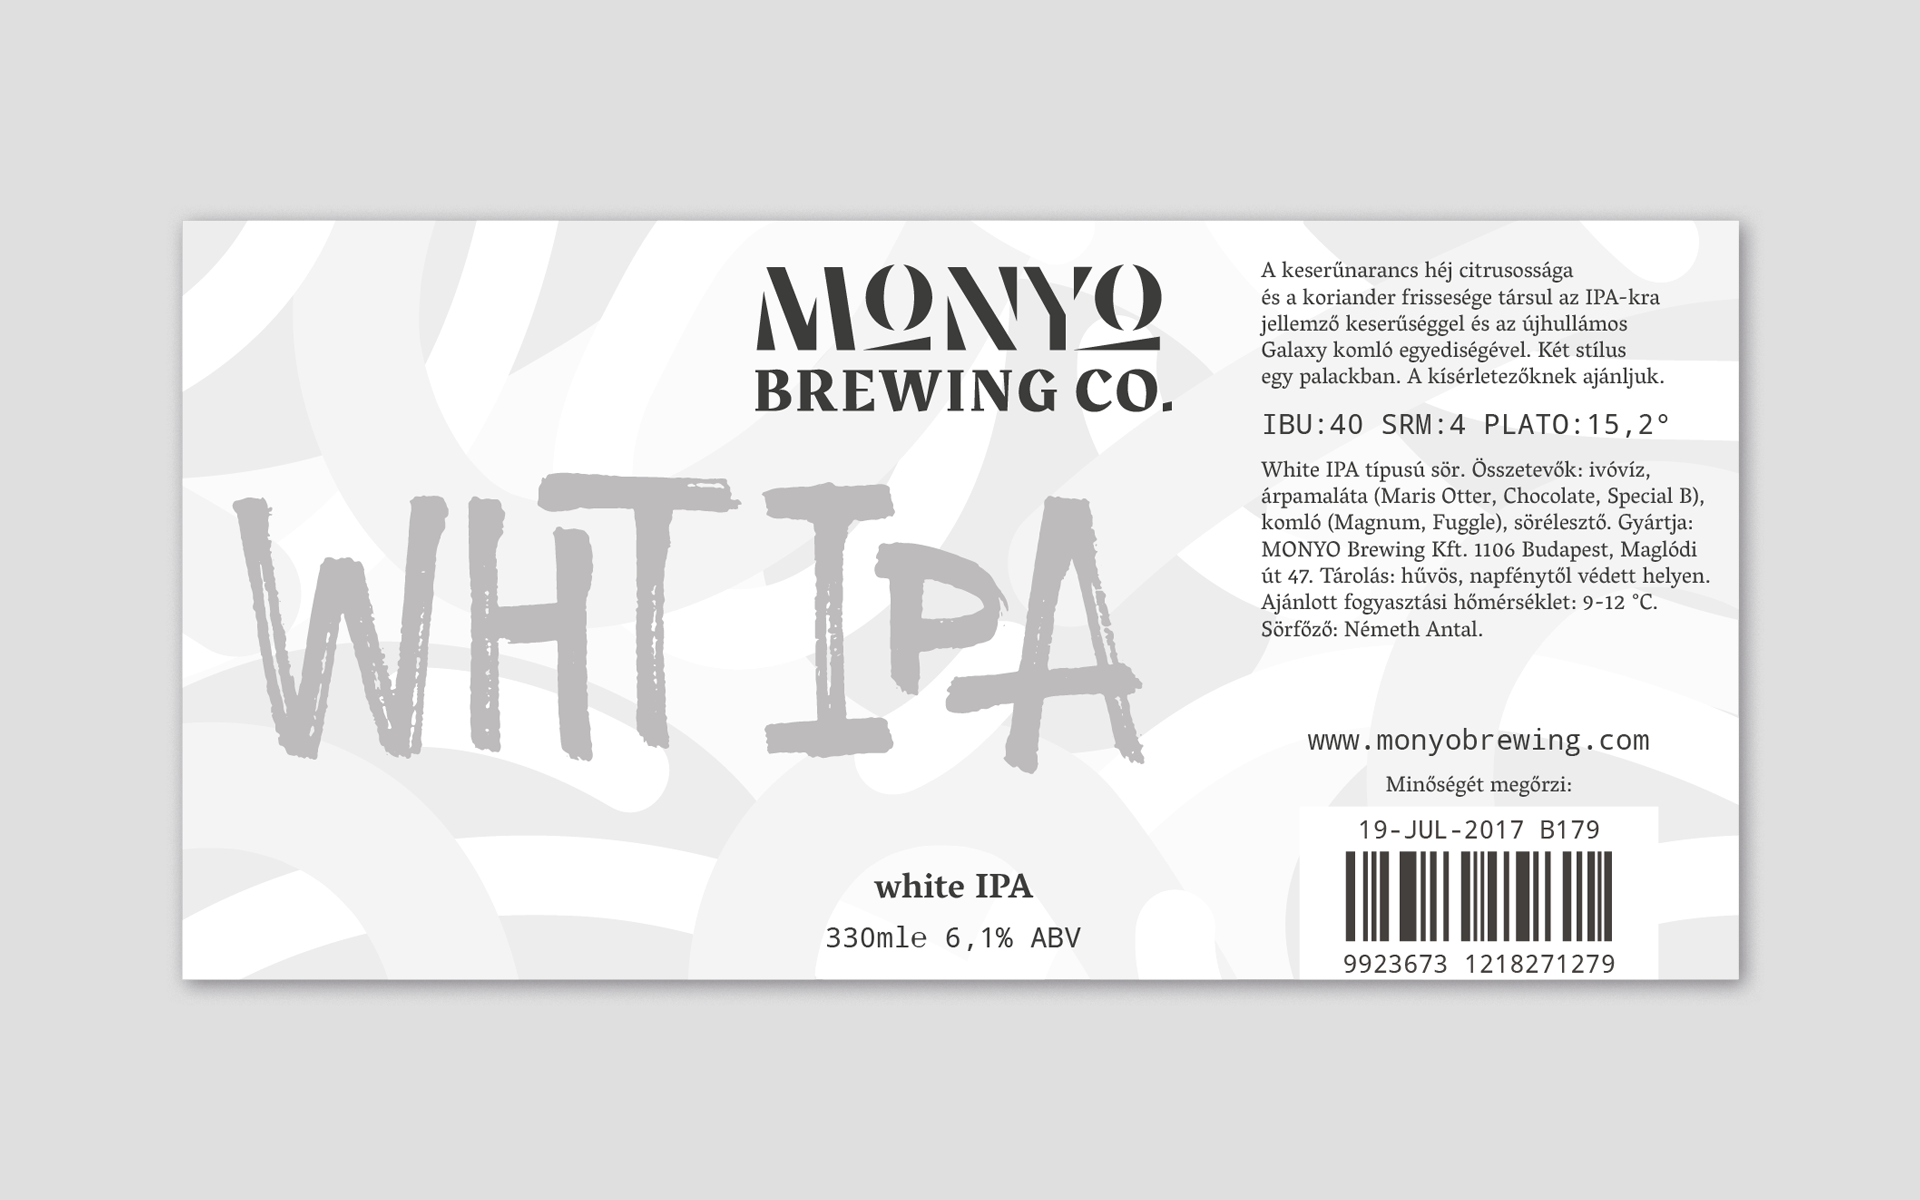 MONYO craft beer packaging \ White IPA label design